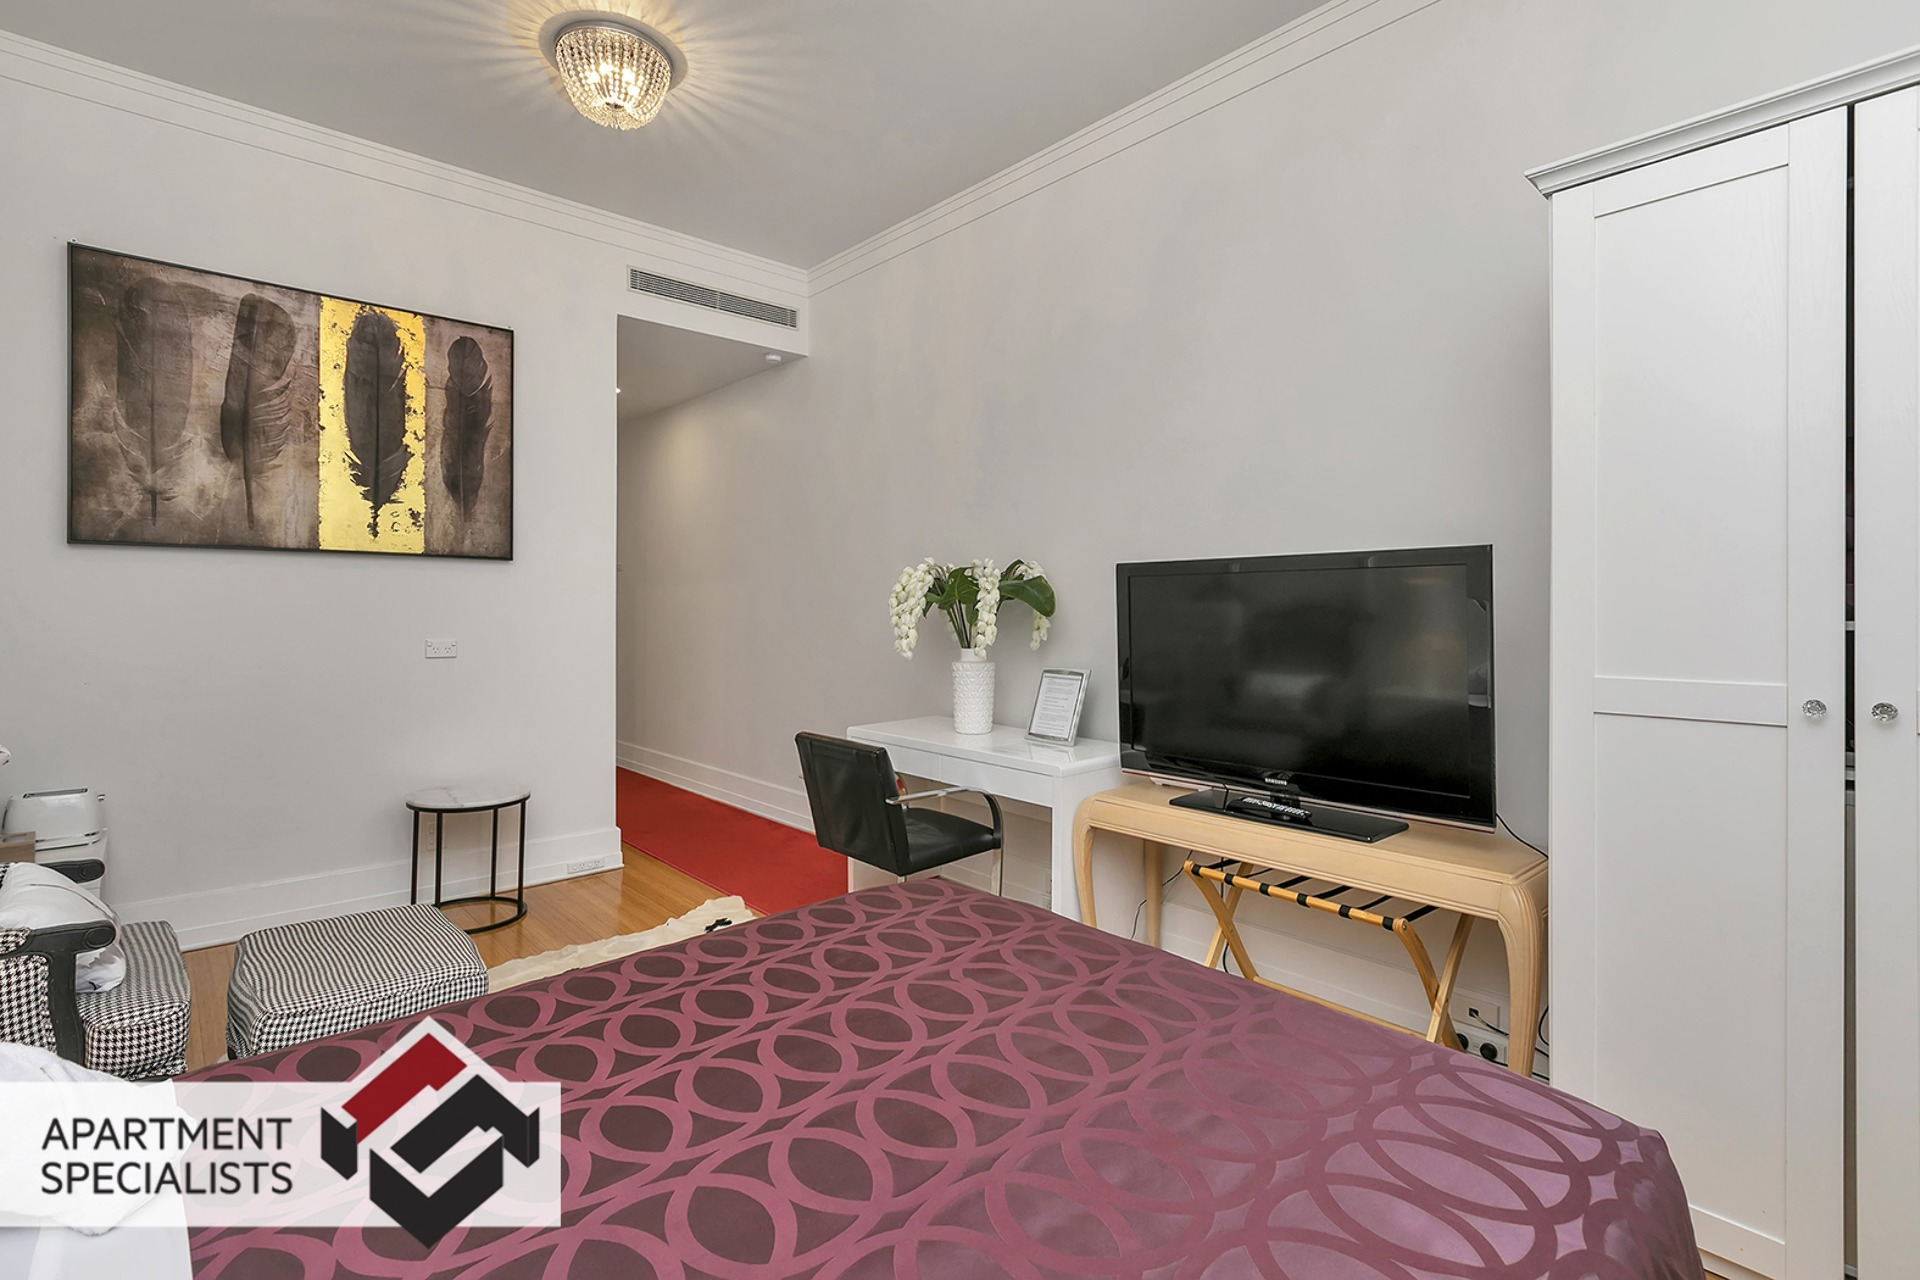 0 | 35 Hobson Street, City Centre | Apartment Specialists